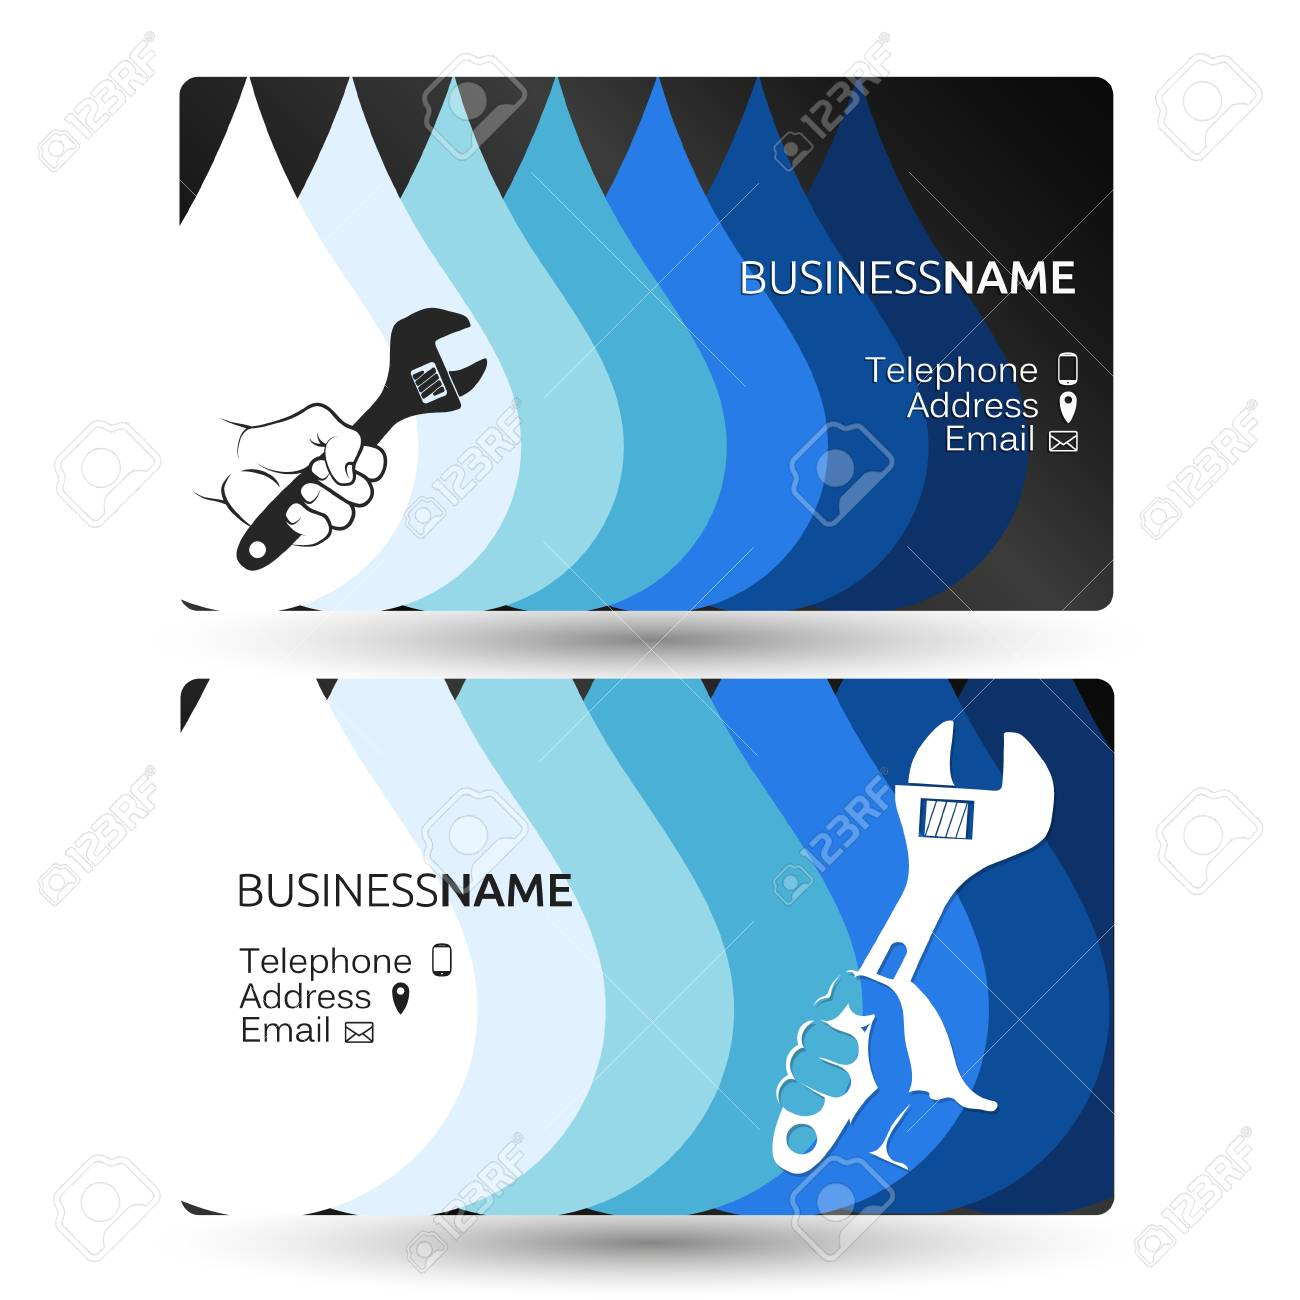 Plumbing Business Card Concept For Repair And Maintenance Royalty